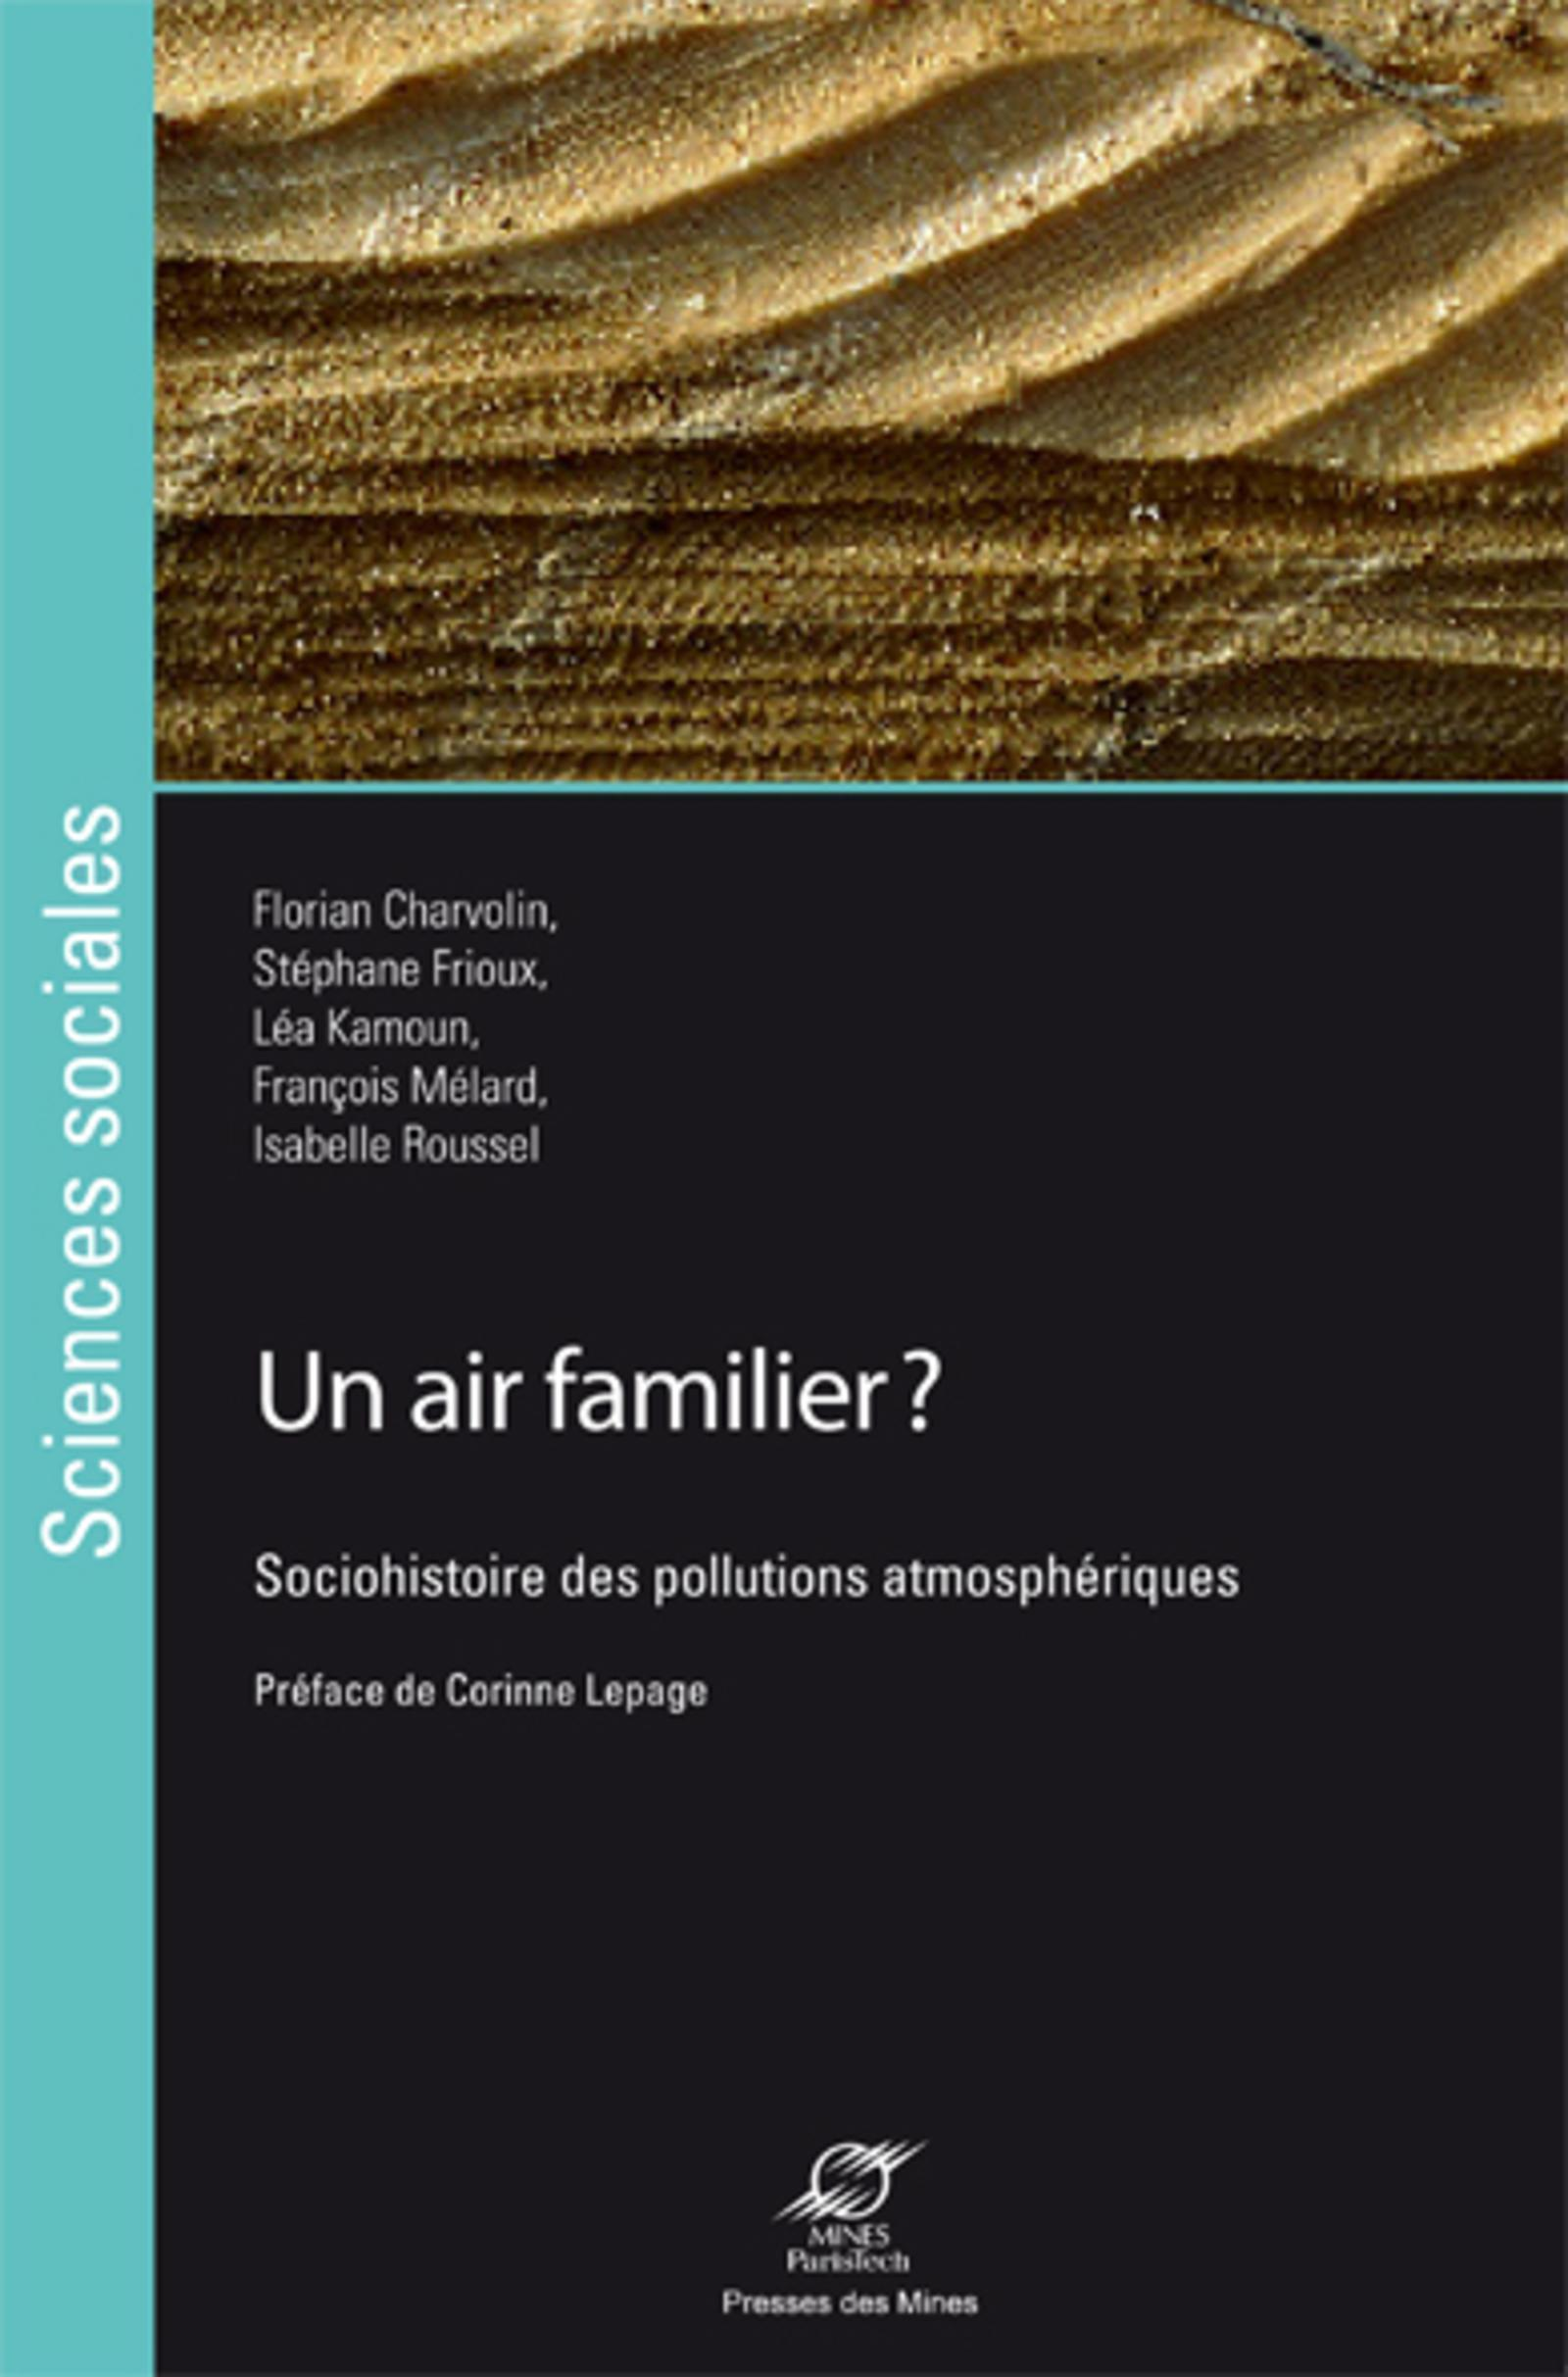 UN AIR FAMILLIER  SOCIOHISTOIRE DES POLLUTIONS ATMOSPHERIQUES